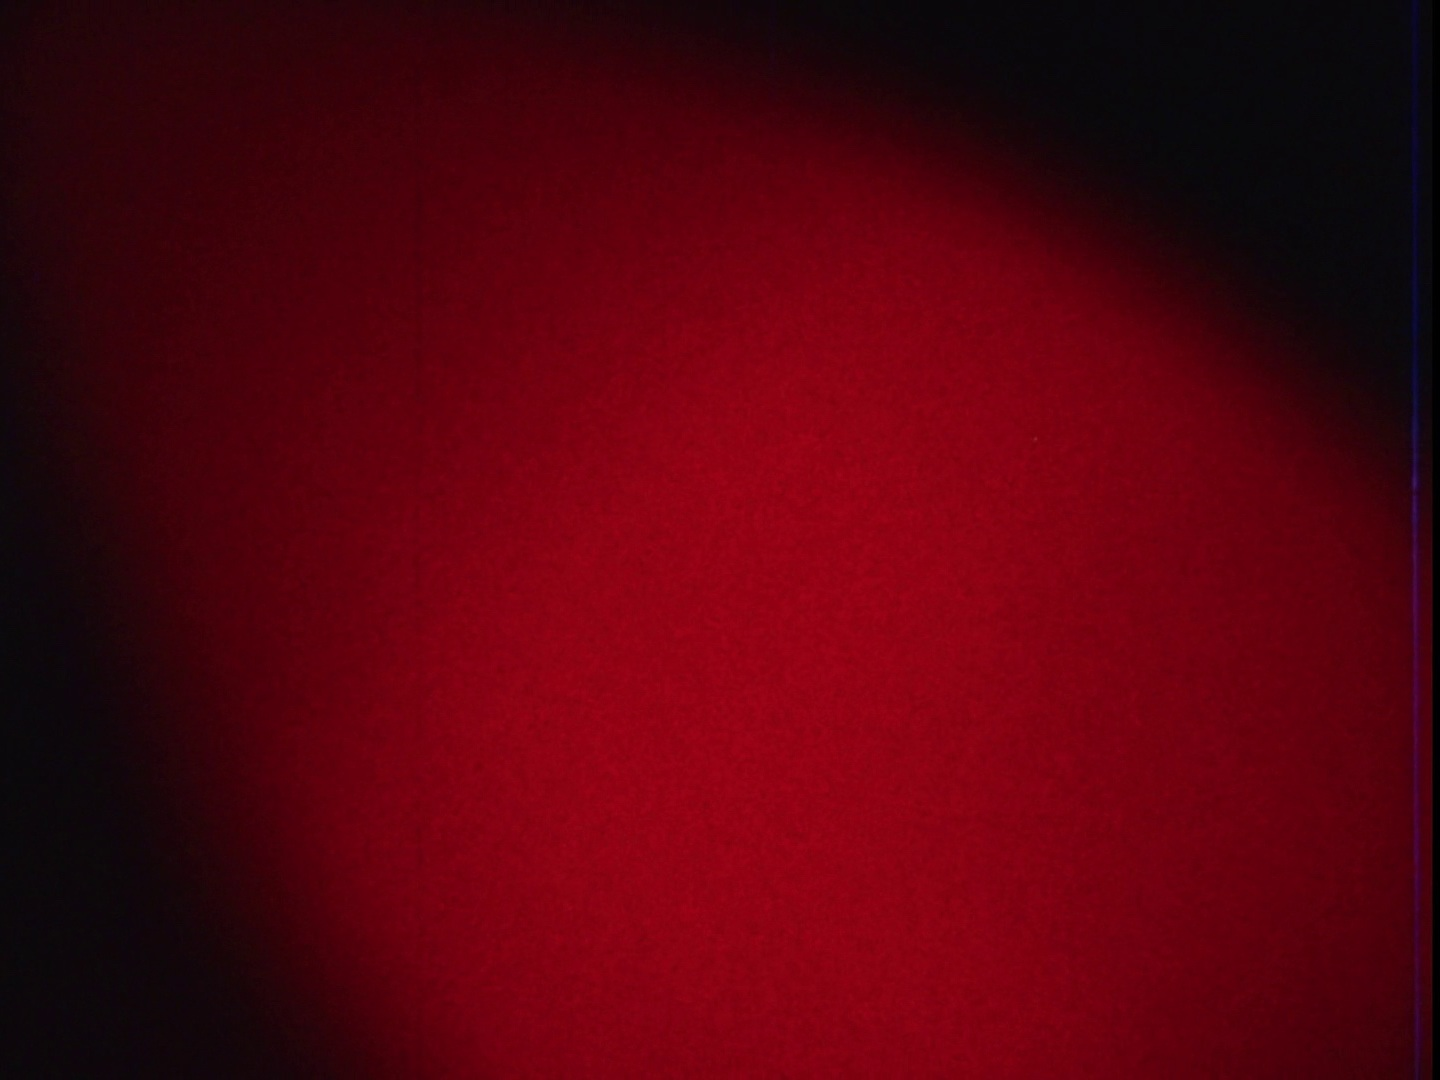 1997c (Red Sketch)    Steve Polta  1997 | 6 minutes | USA | super 8 | color | sound  in the real world  that there was the real world brought in chaos and it brought in  unpredictability and the richness of the flow of light spectrum and color  spectrum had a lot more going -SP